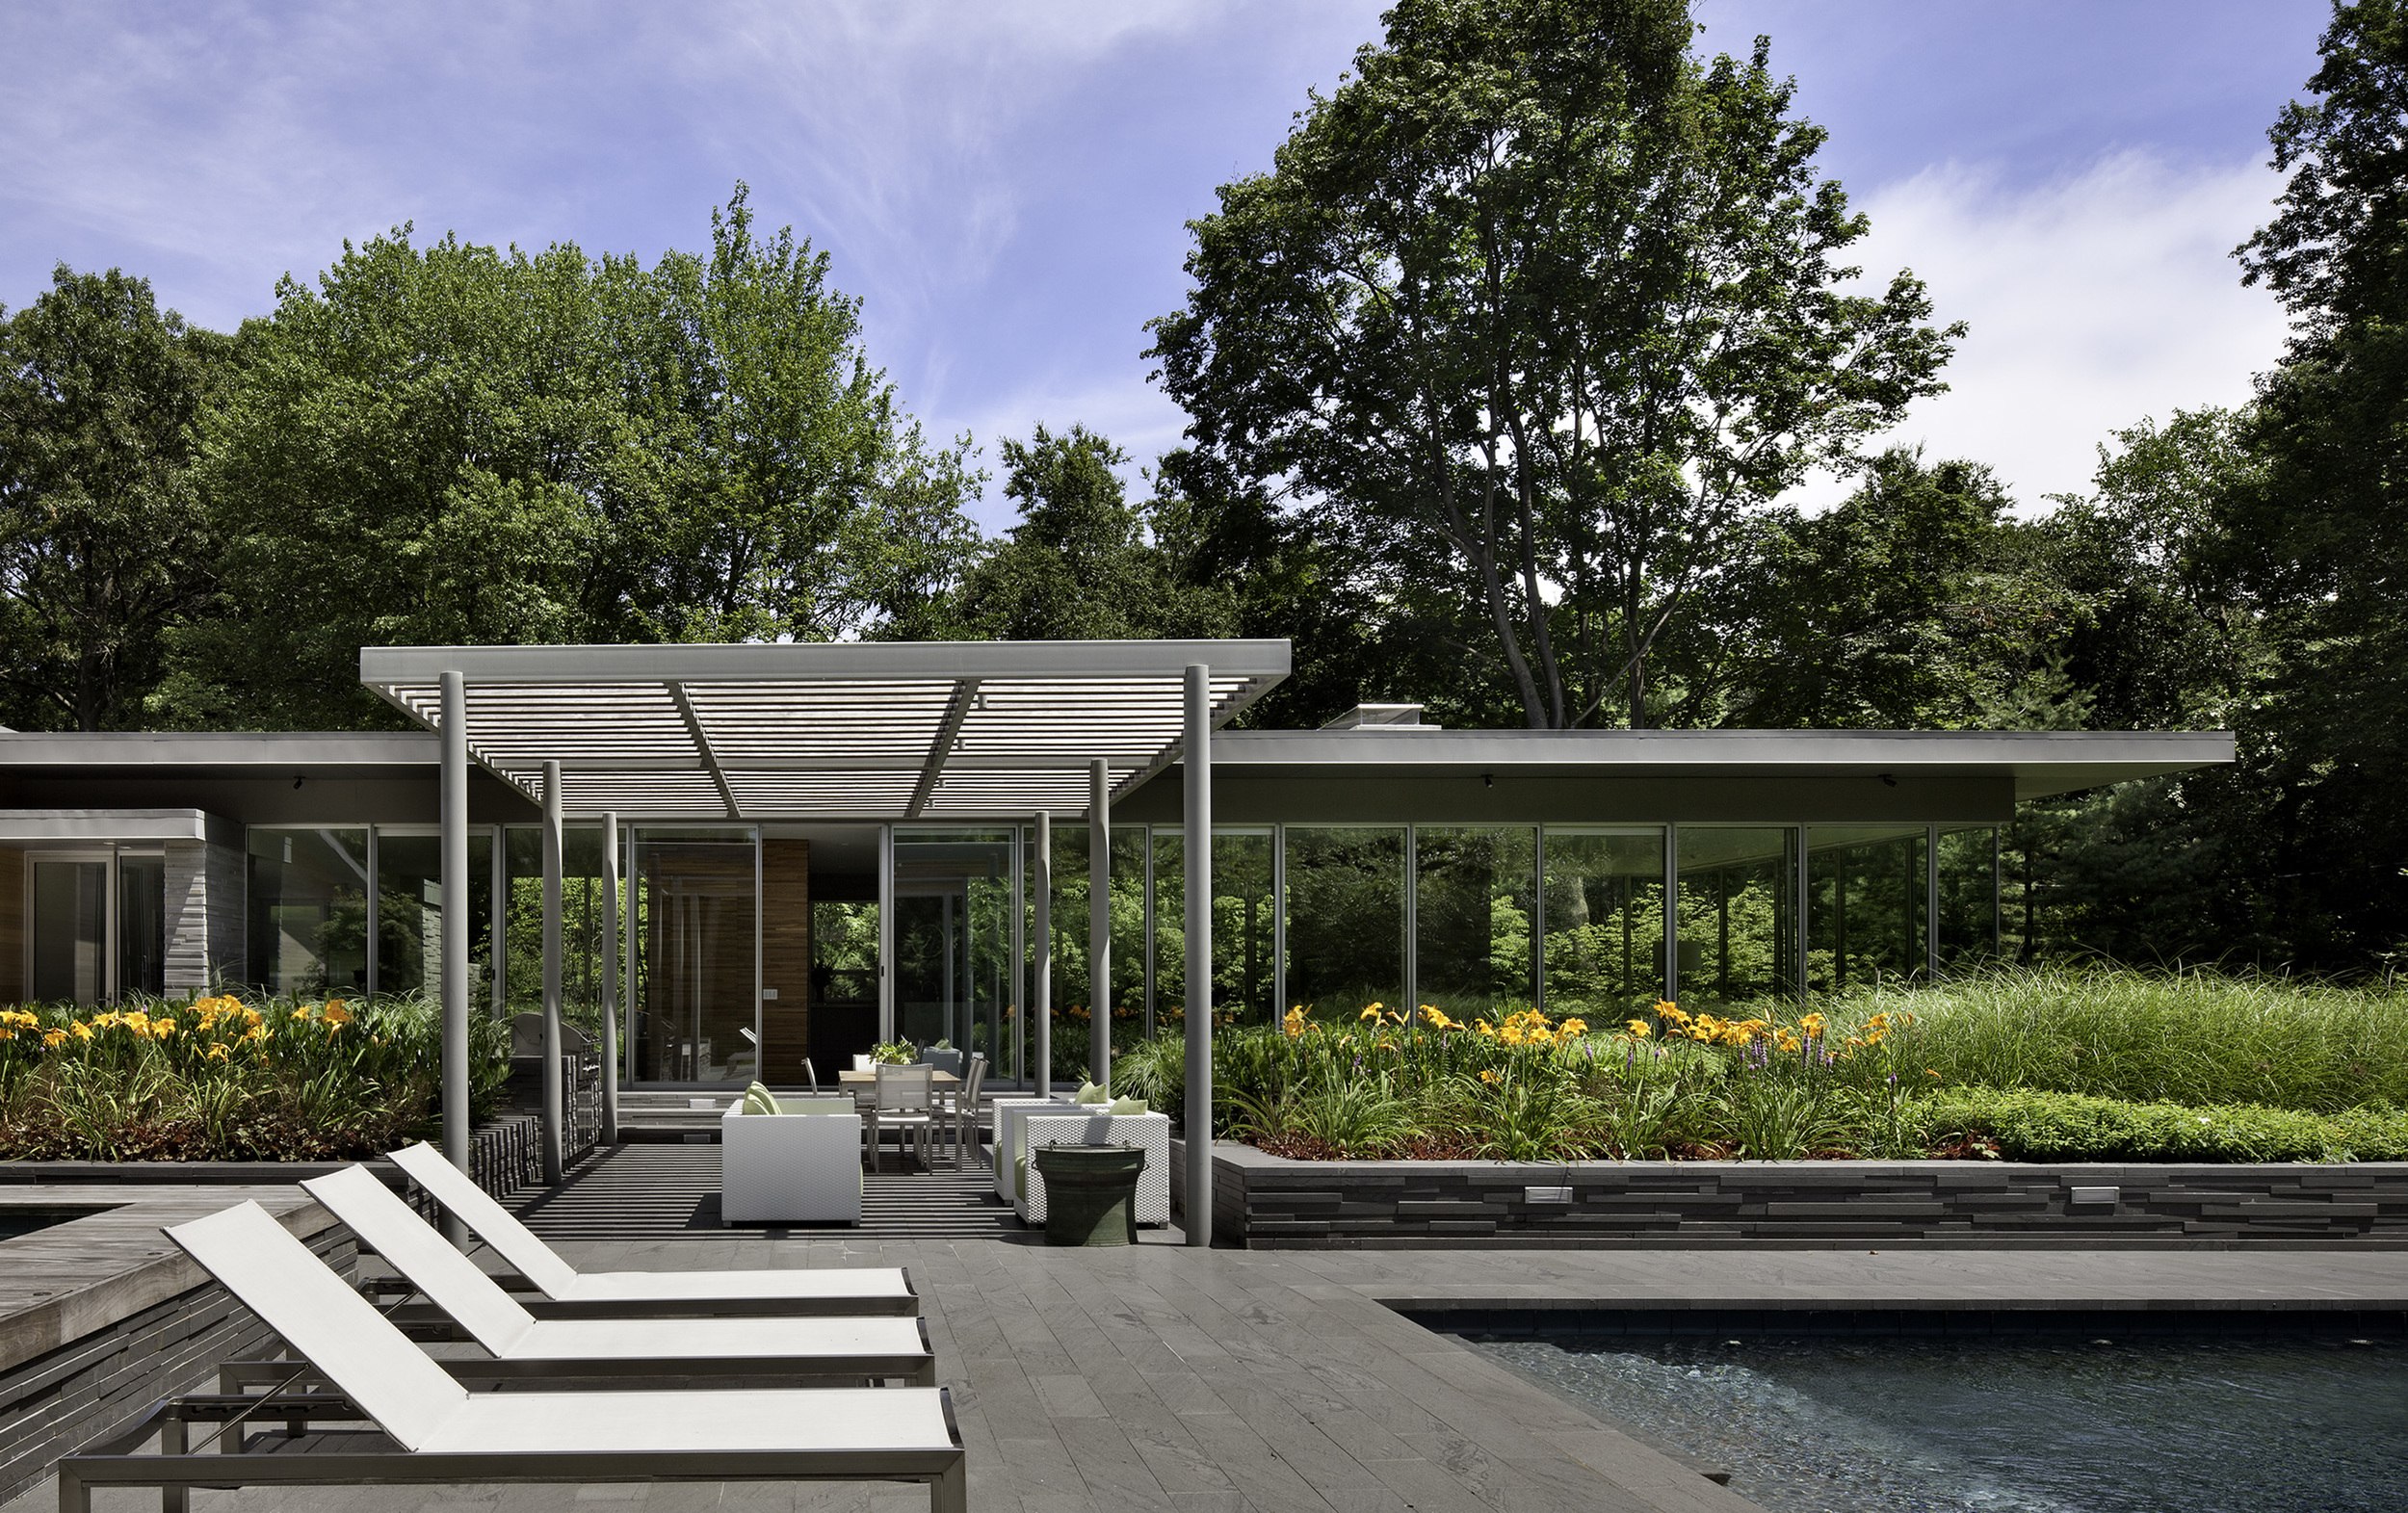 Pavilion, Pergola, Gardens, and Pool